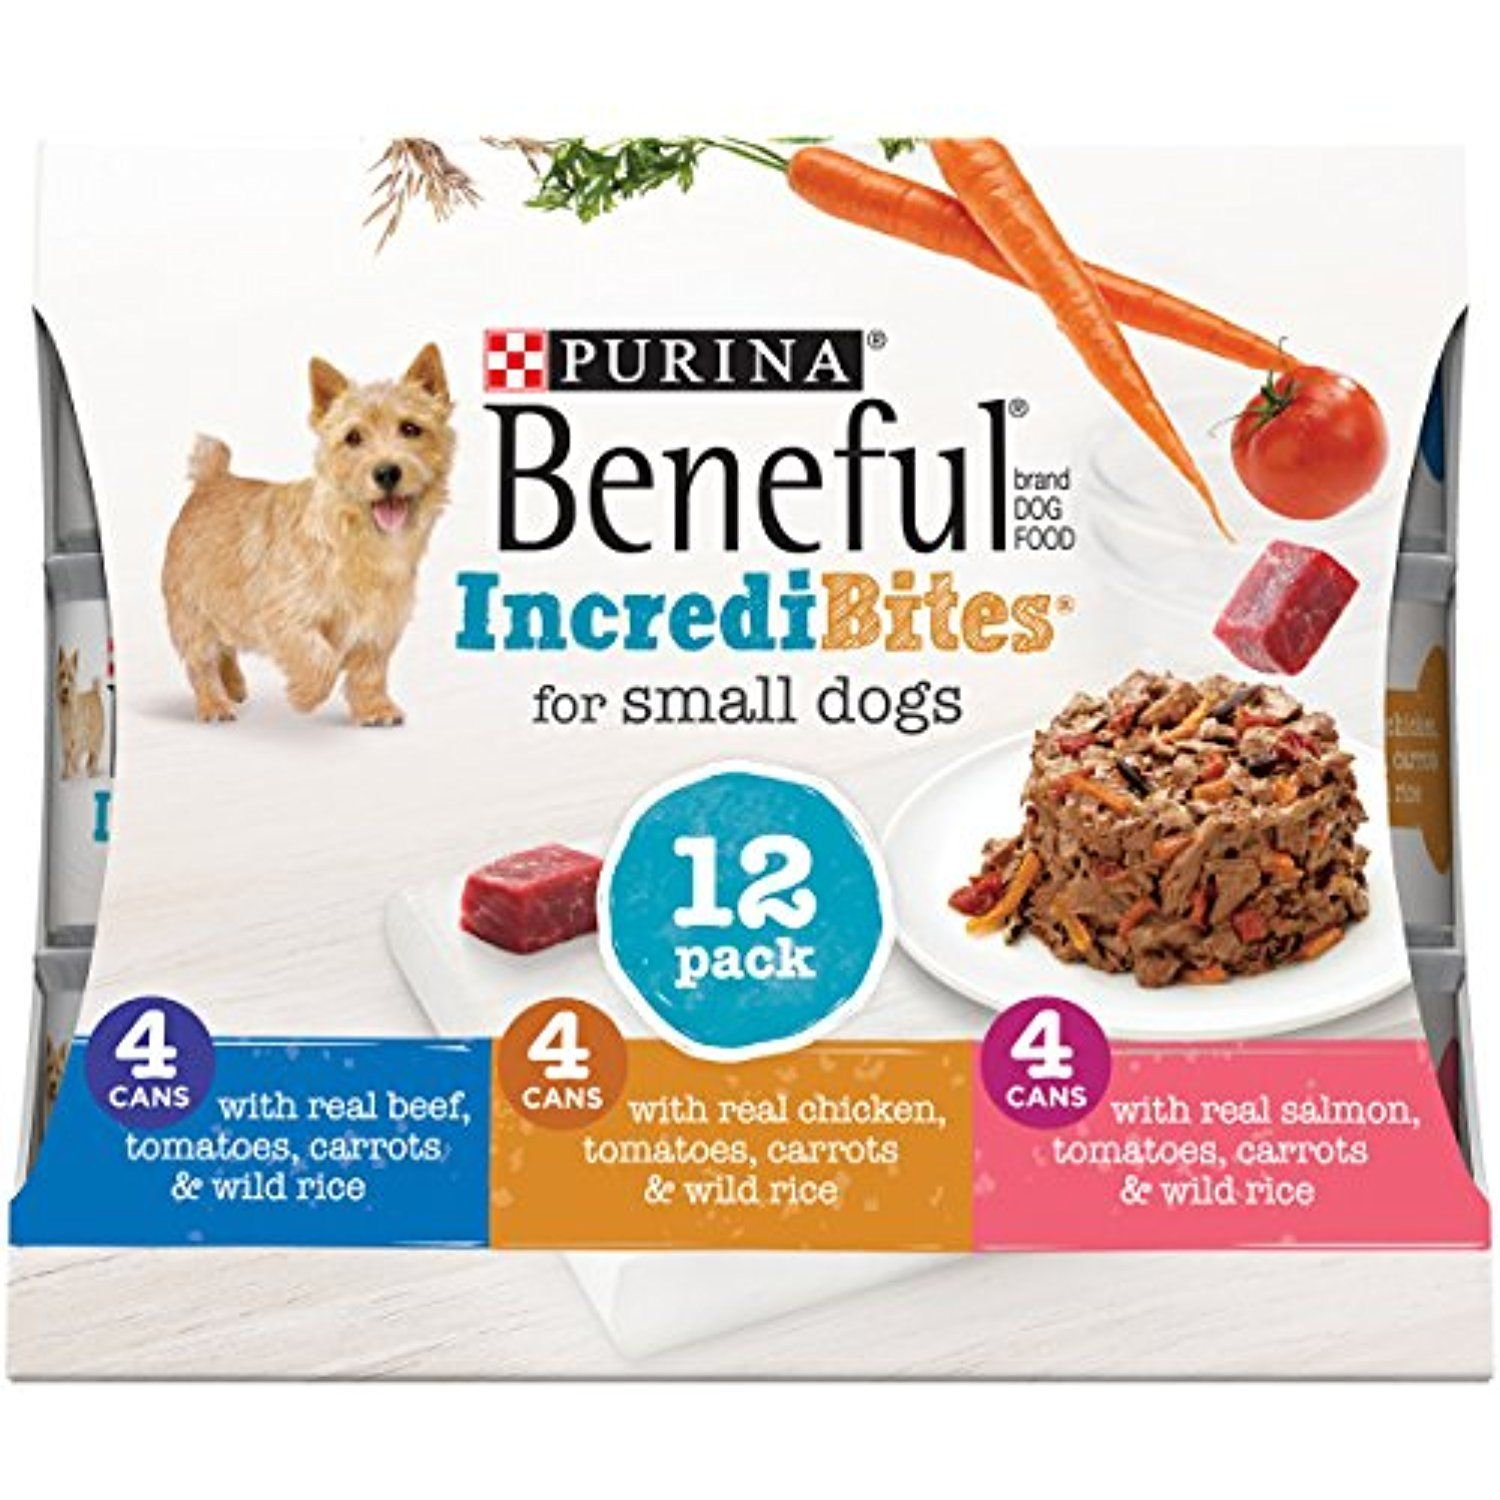 Purina Beneful Incredibites Variety Pack Adult Wet Food 24 3